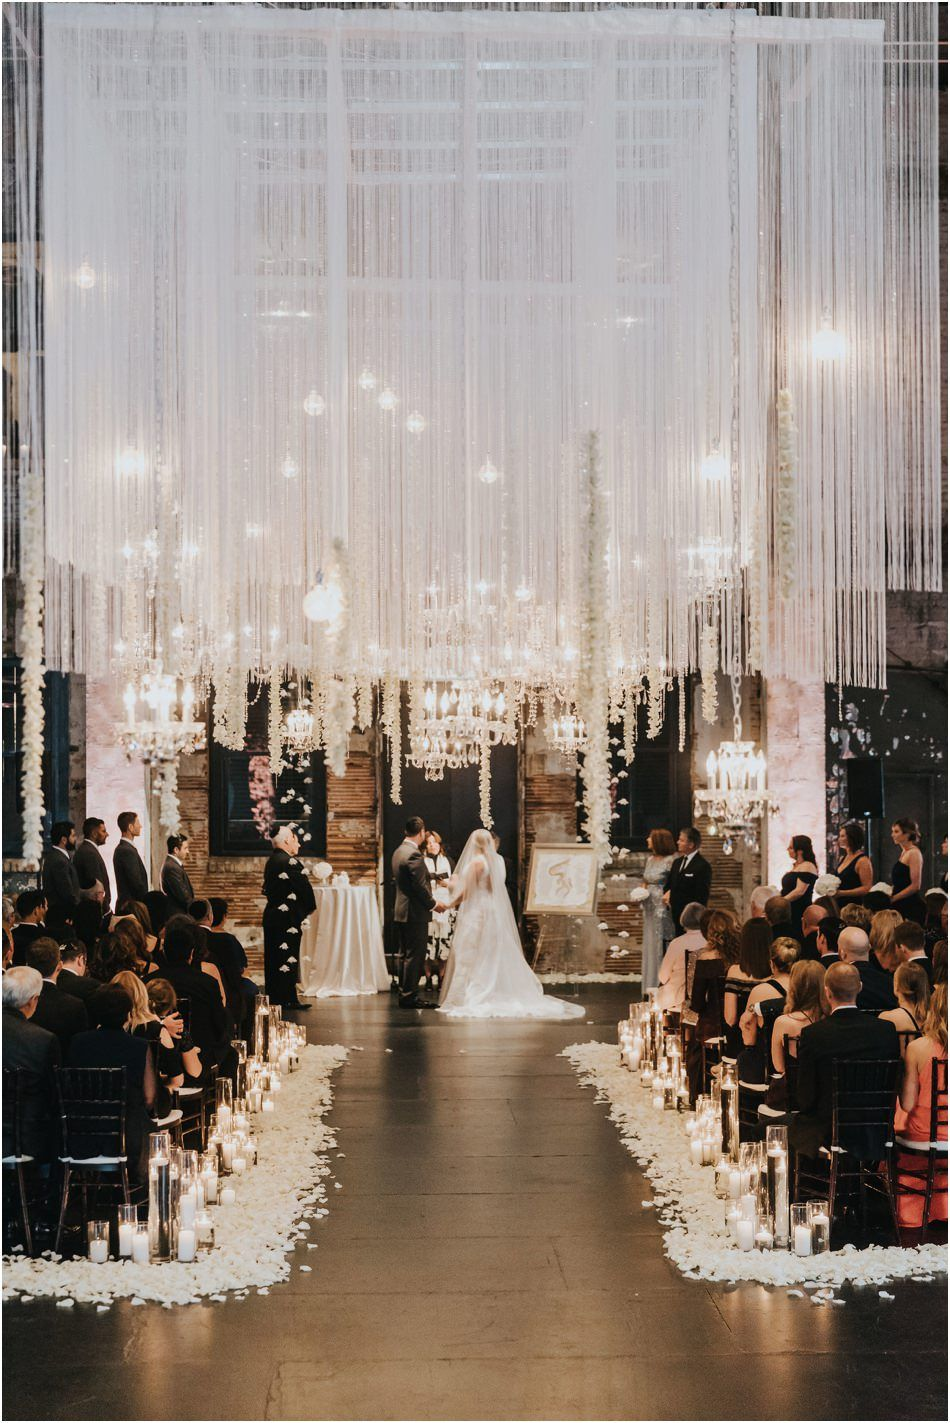 Aria Wedding In Minneapolis Mn With Hanging Chandeliers And Flowers Minnesota Wedding Venues Minneapolis Wedding Minnesota Wedding